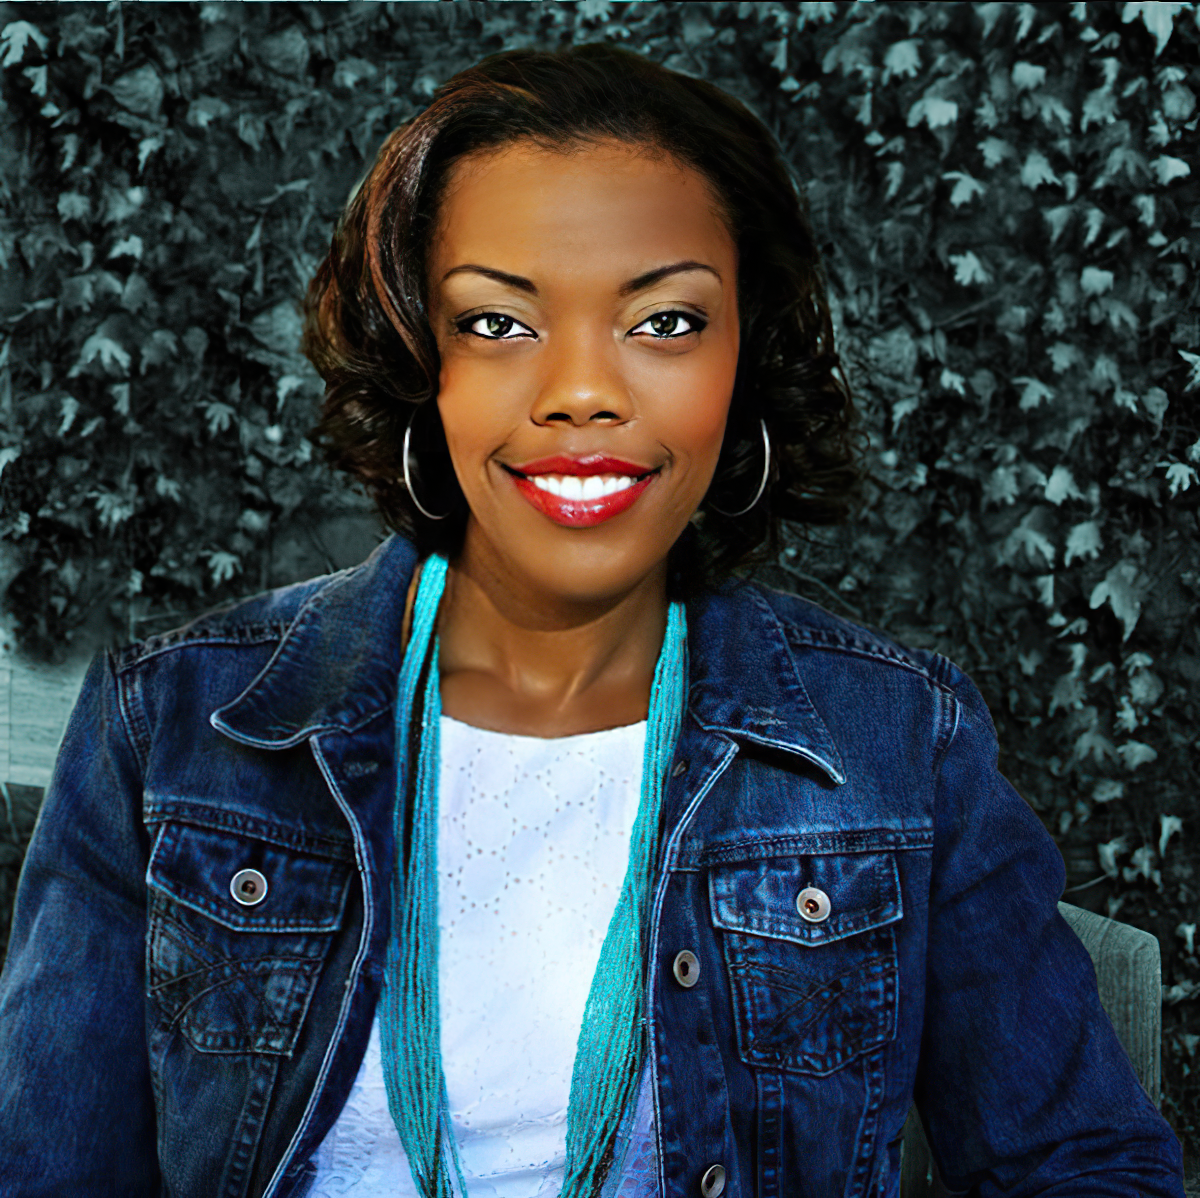 Arianne Mockabee Headshot Smiling Wearing a Jean Jacket and a Blue Scarf